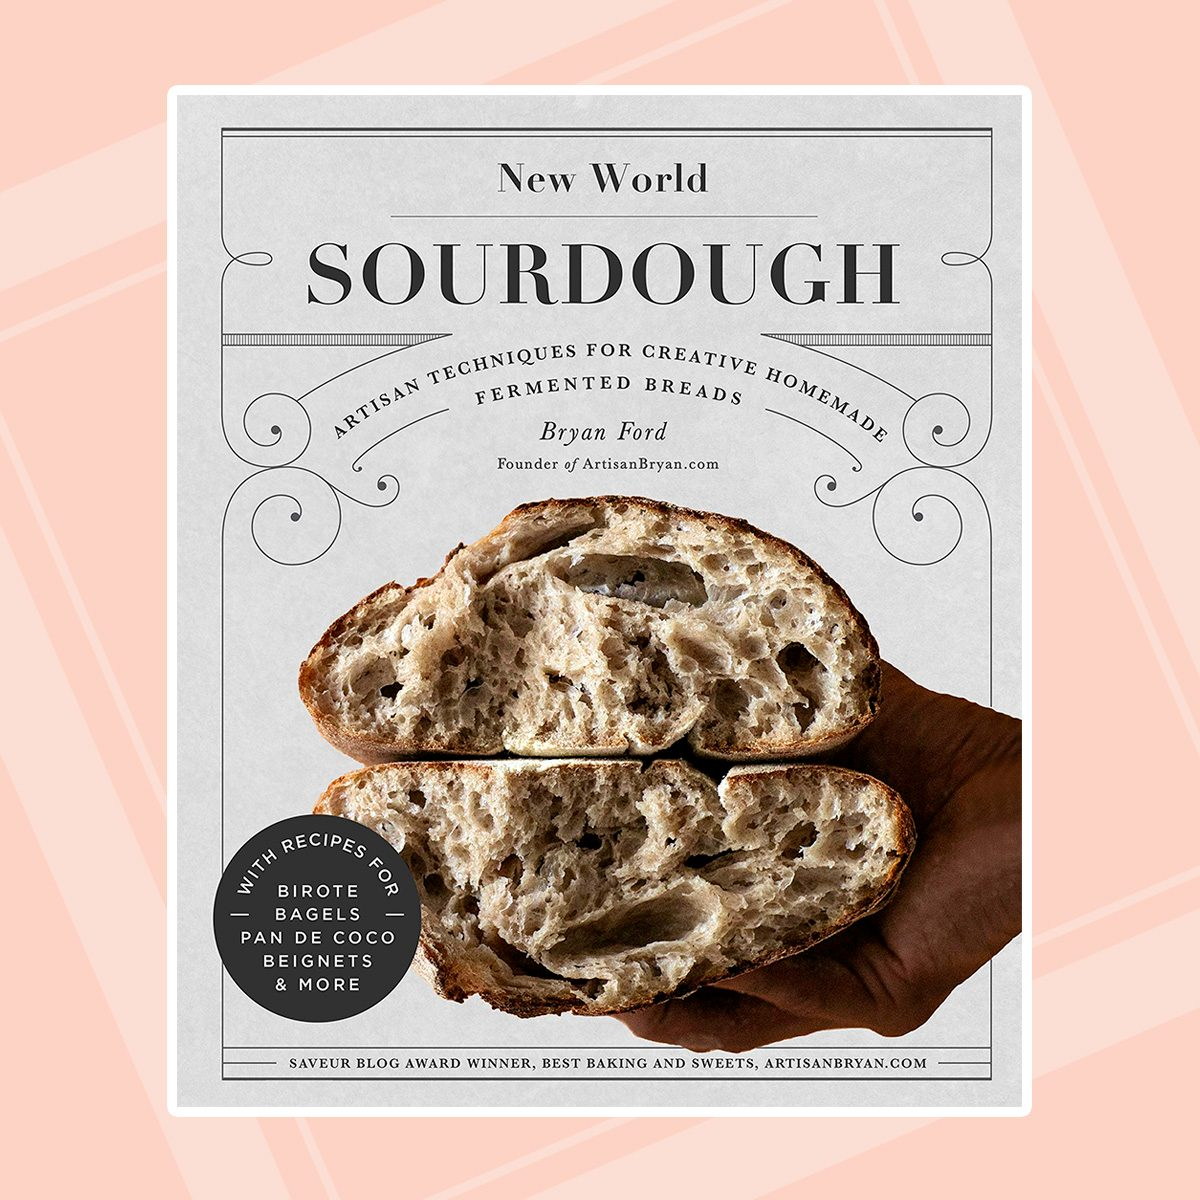 New World Sourdough: Artisan Techniques for Creative Homemade Fermented Breads; With Recipes for Birote, Bagels, Pan de Coco, Beignets, and More Hardcover – Illustrated, June 16, 2020